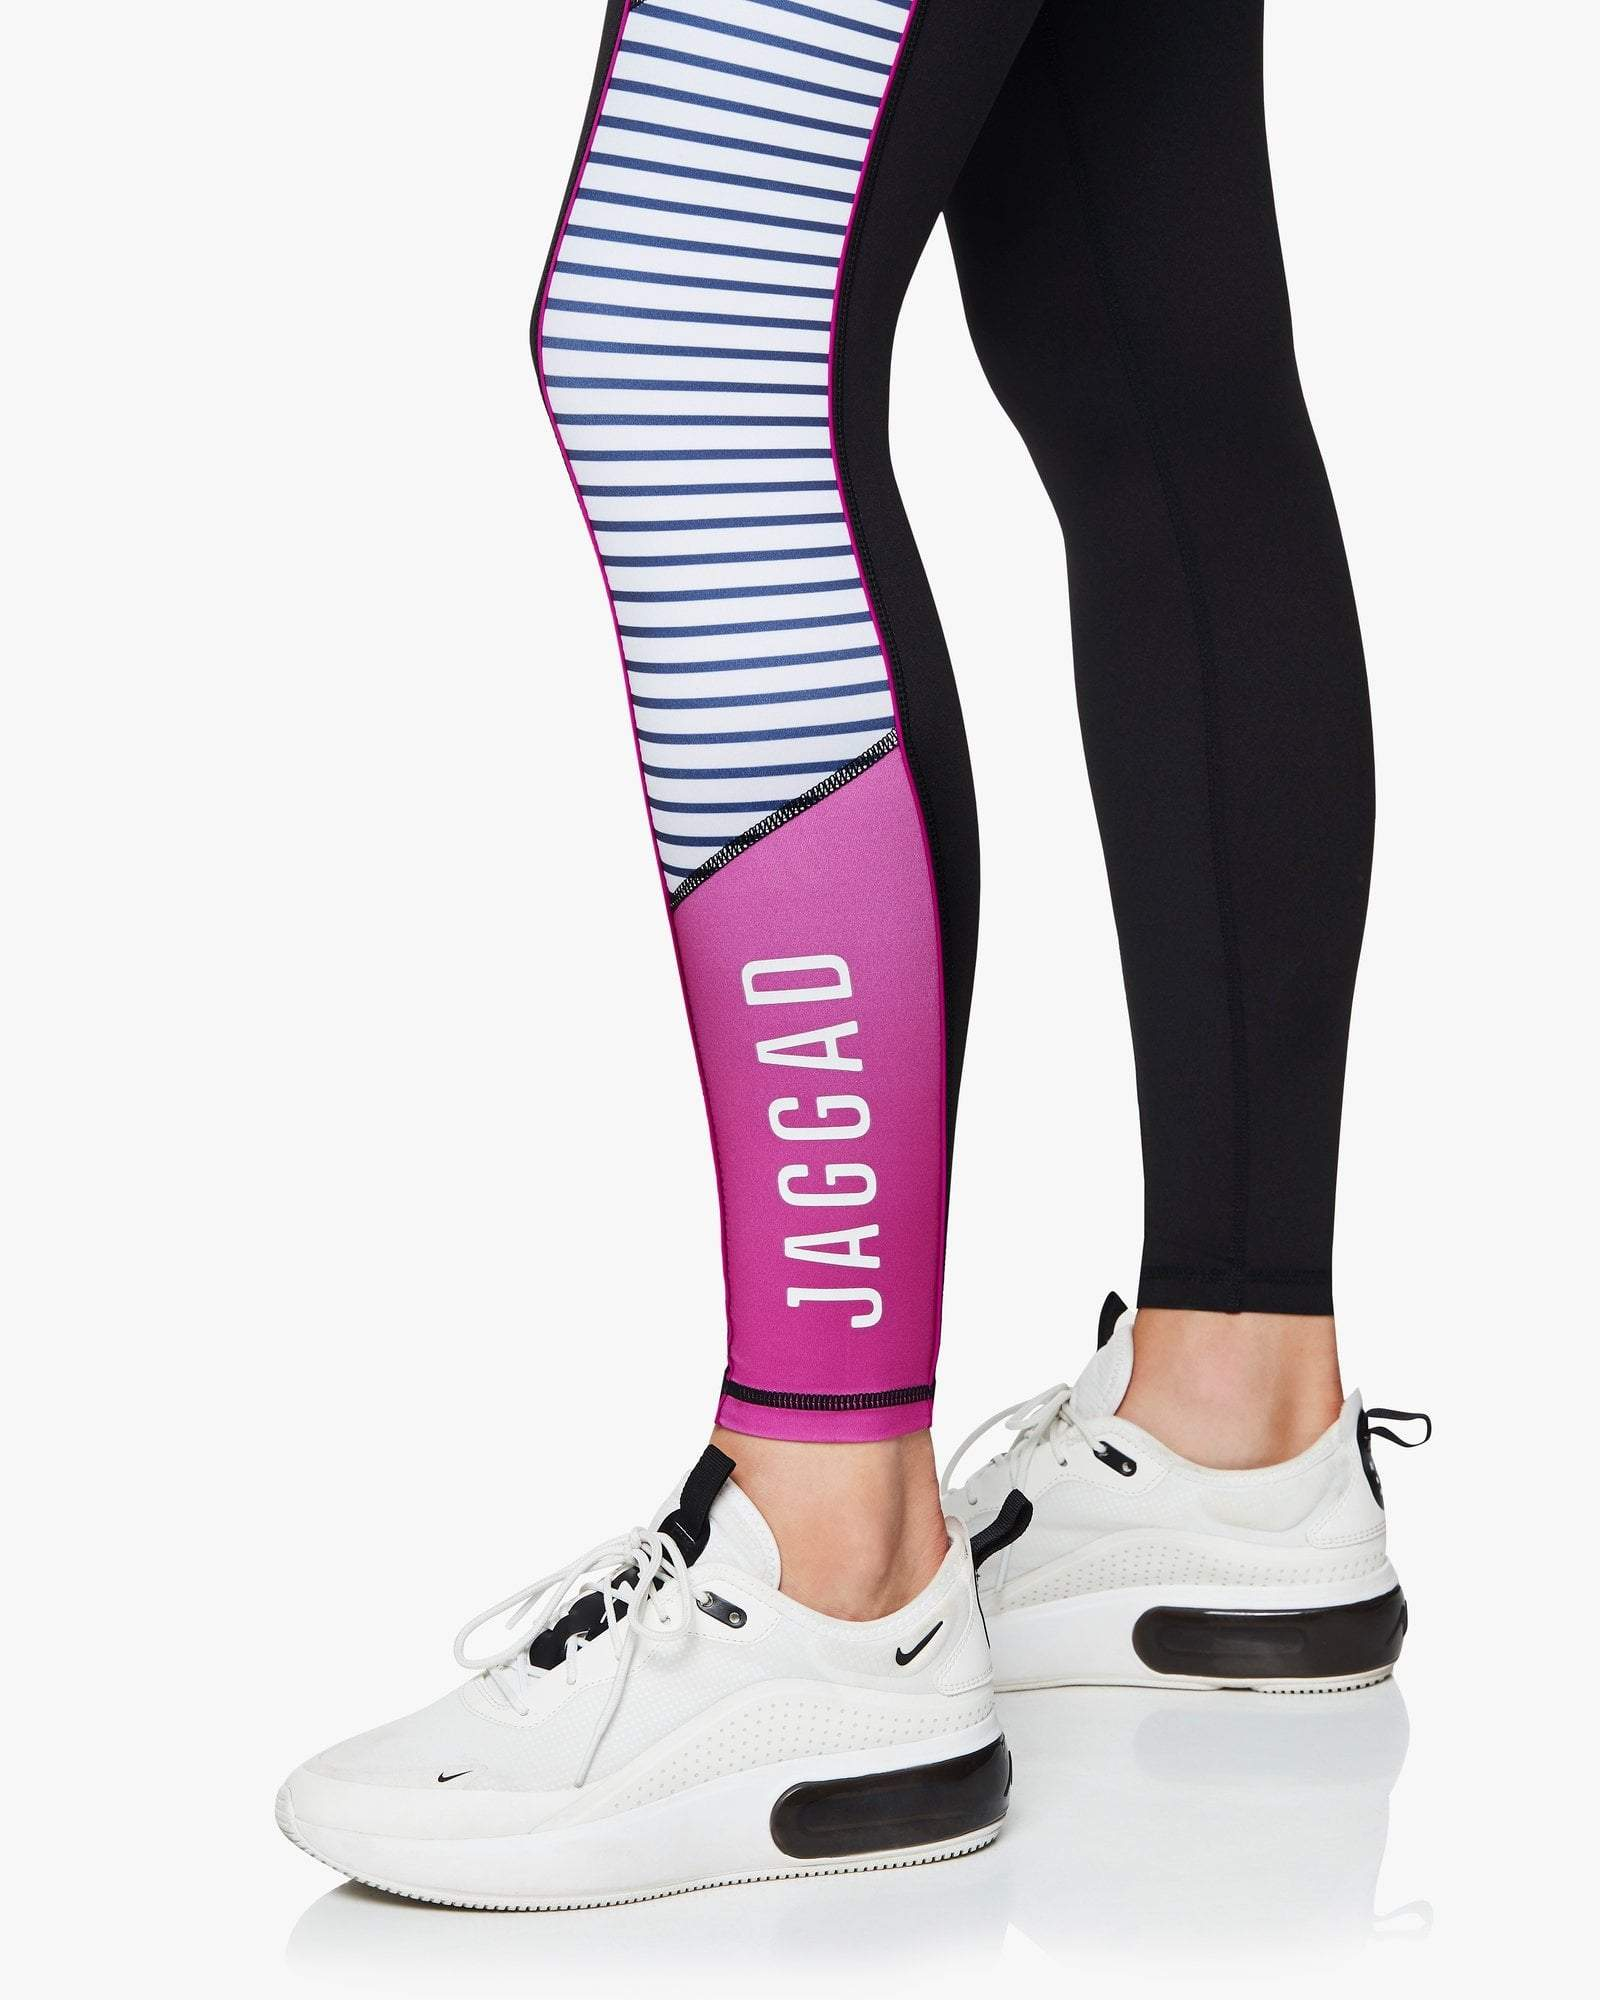 Jaggad La Brea Full-Length Leggings